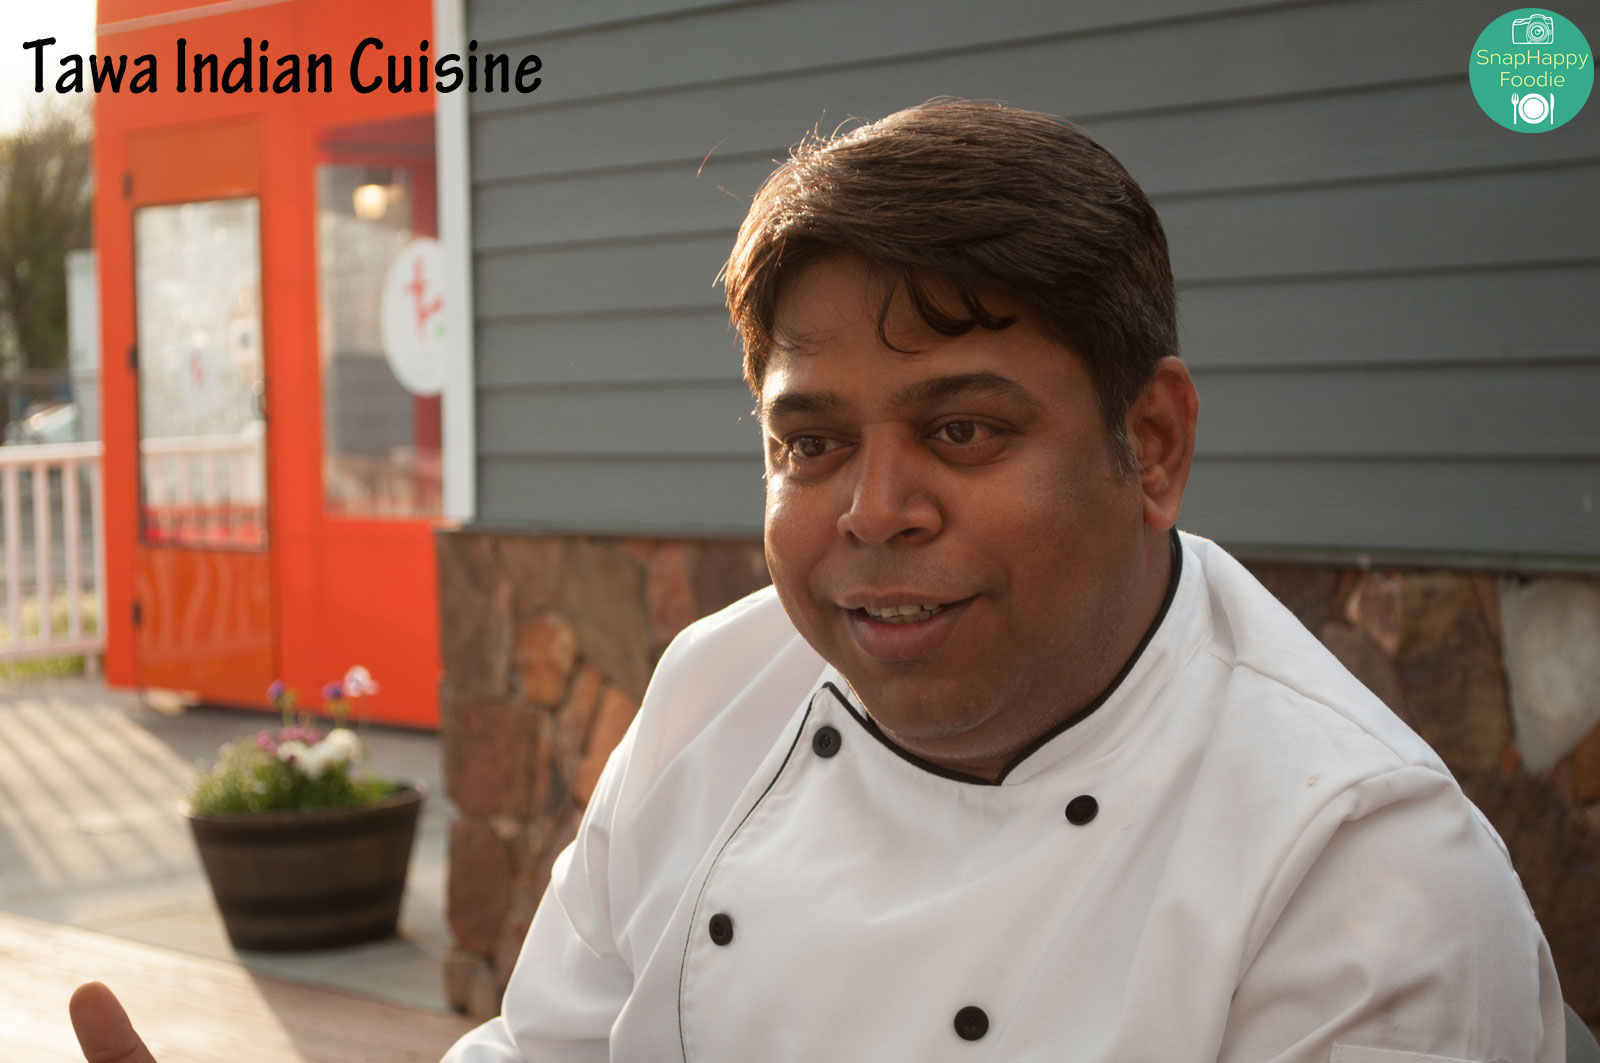 Chef Kausik Roy, the master behind Tawa Indian Cuisine